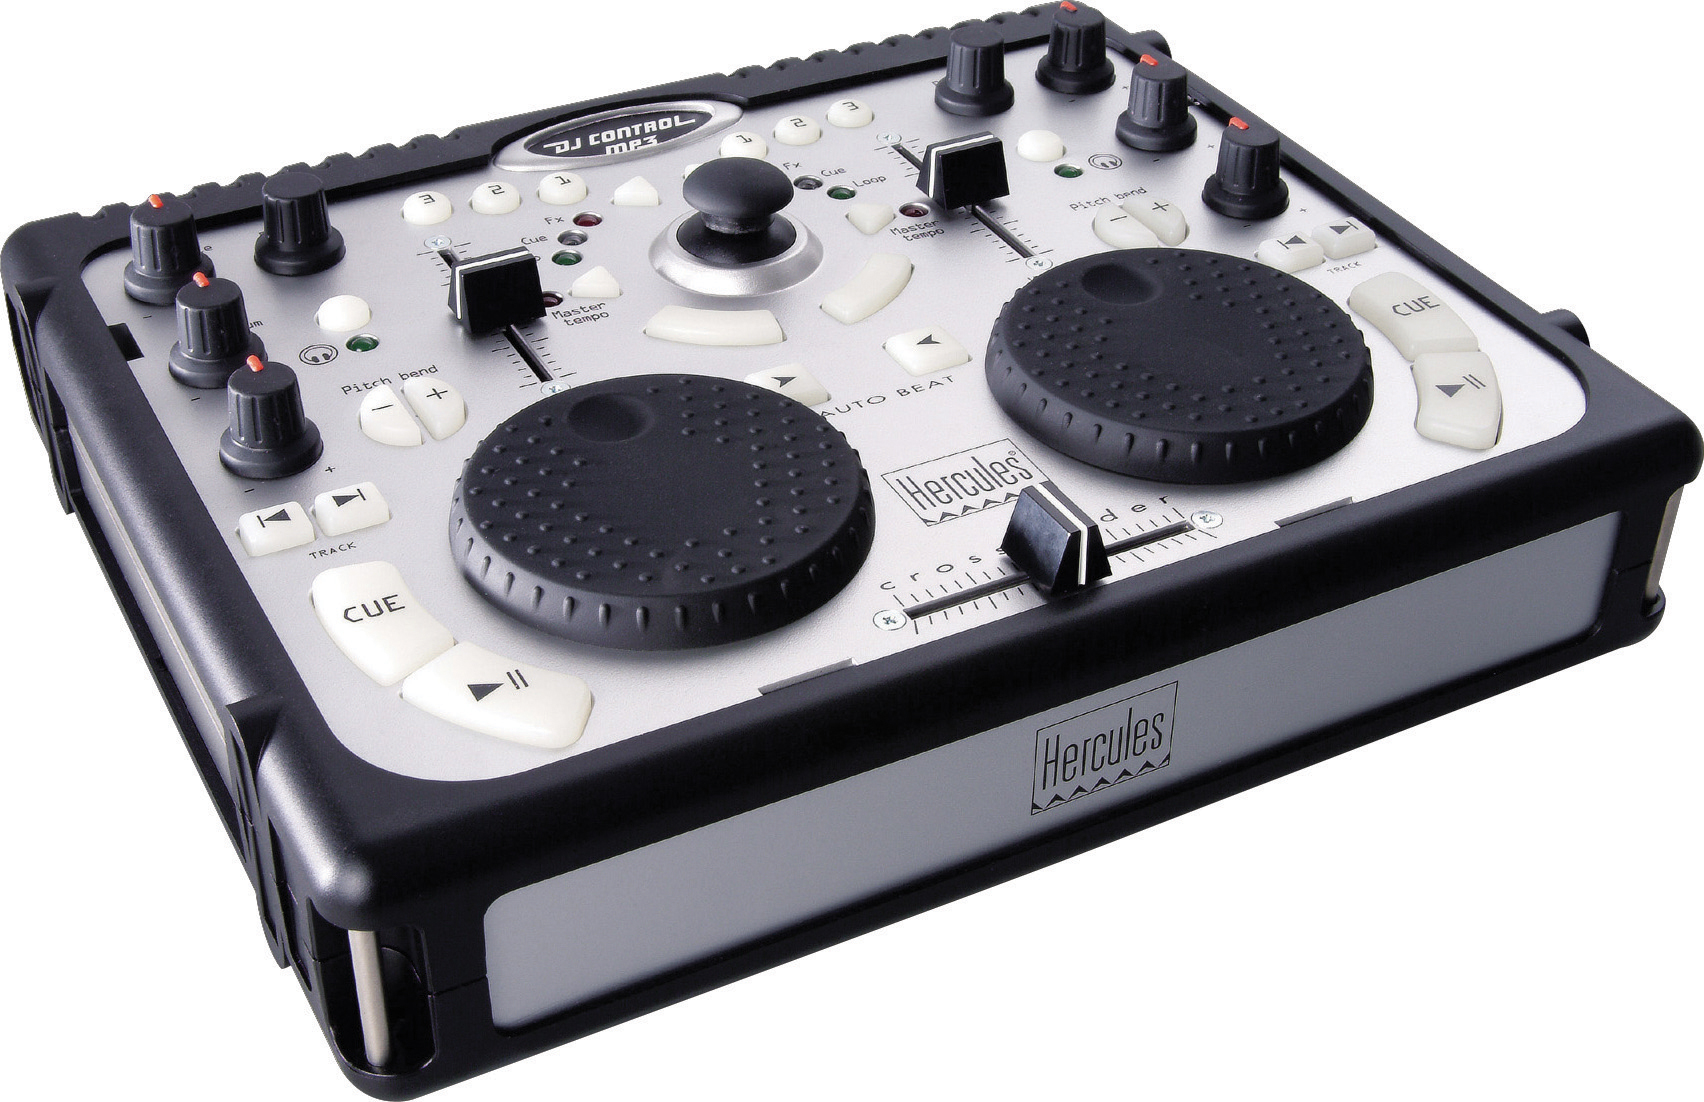 Mesa Hercules Mp3 E2 Choosing A Digital Djing Controller Digital Dj Tips